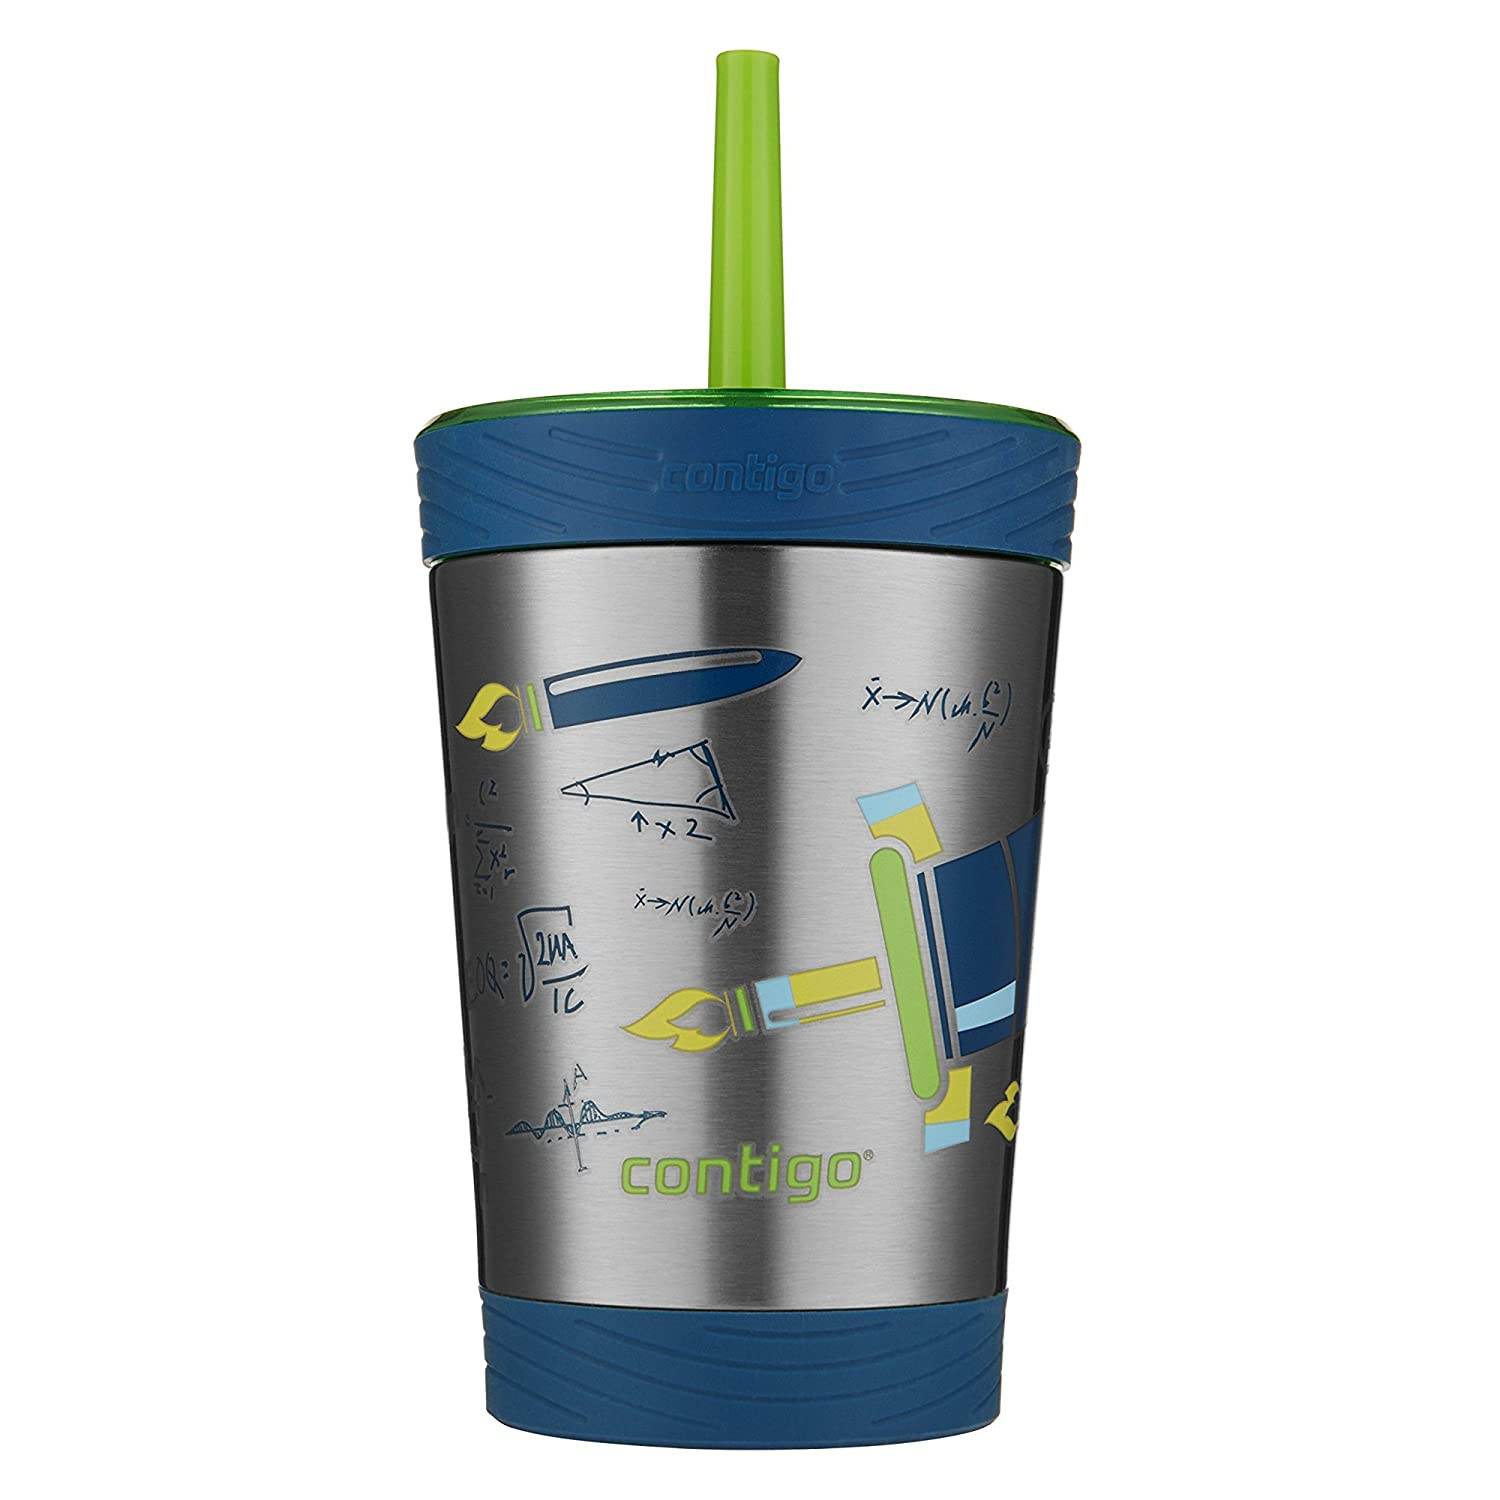 Contigo Stainless Steel Spill-Proof Kids Tumbler with Straw, 12 oz, Granny Smith with Rocket Design